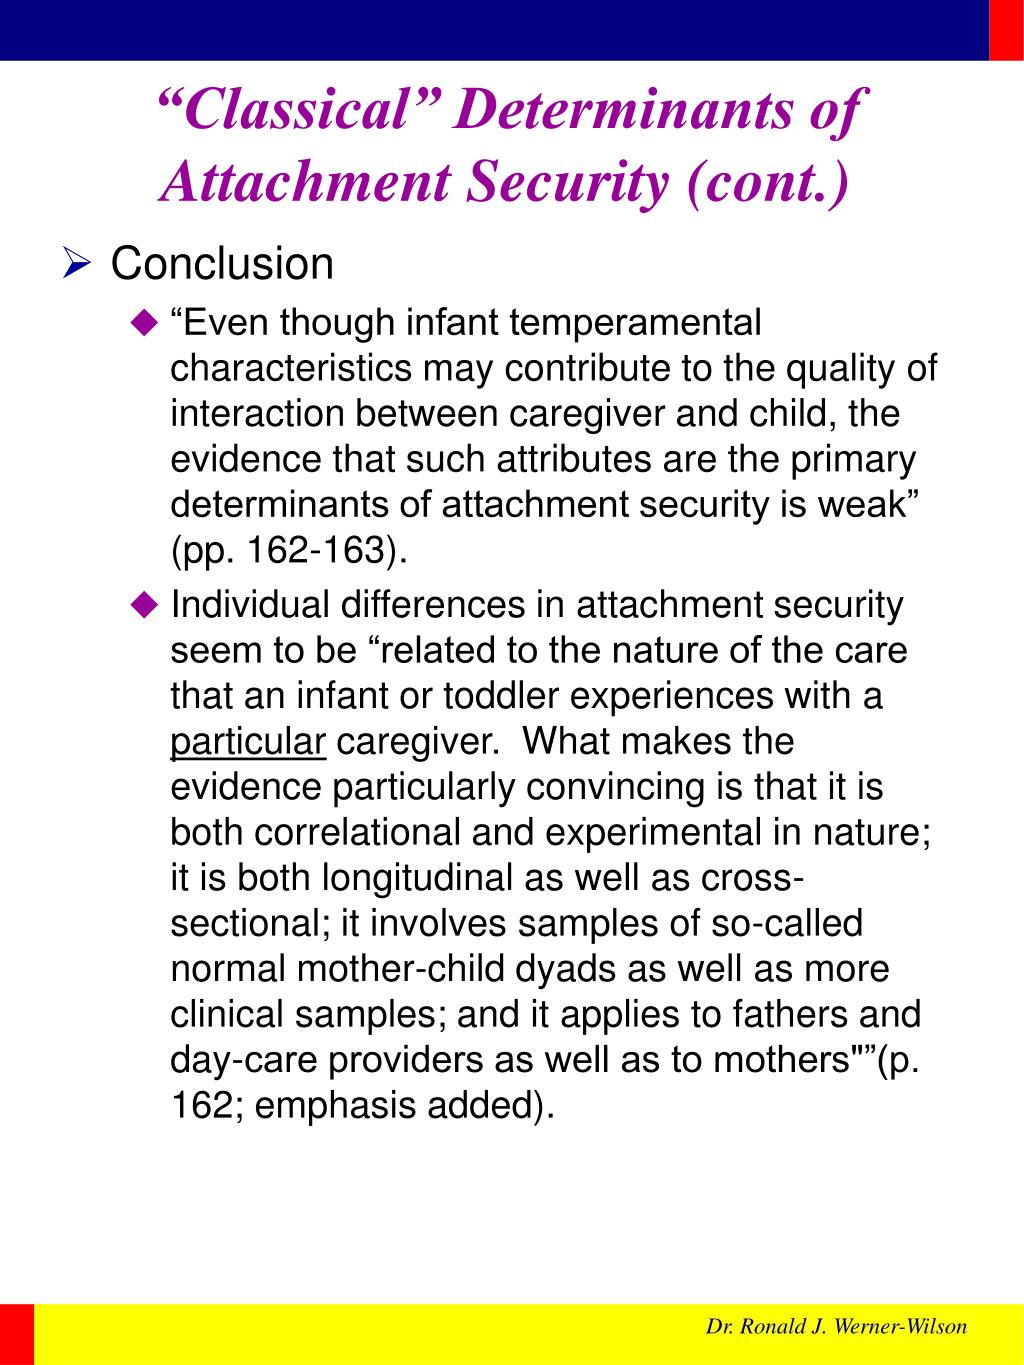 """Classical"" Determinants of Attachment Security (cont.)"